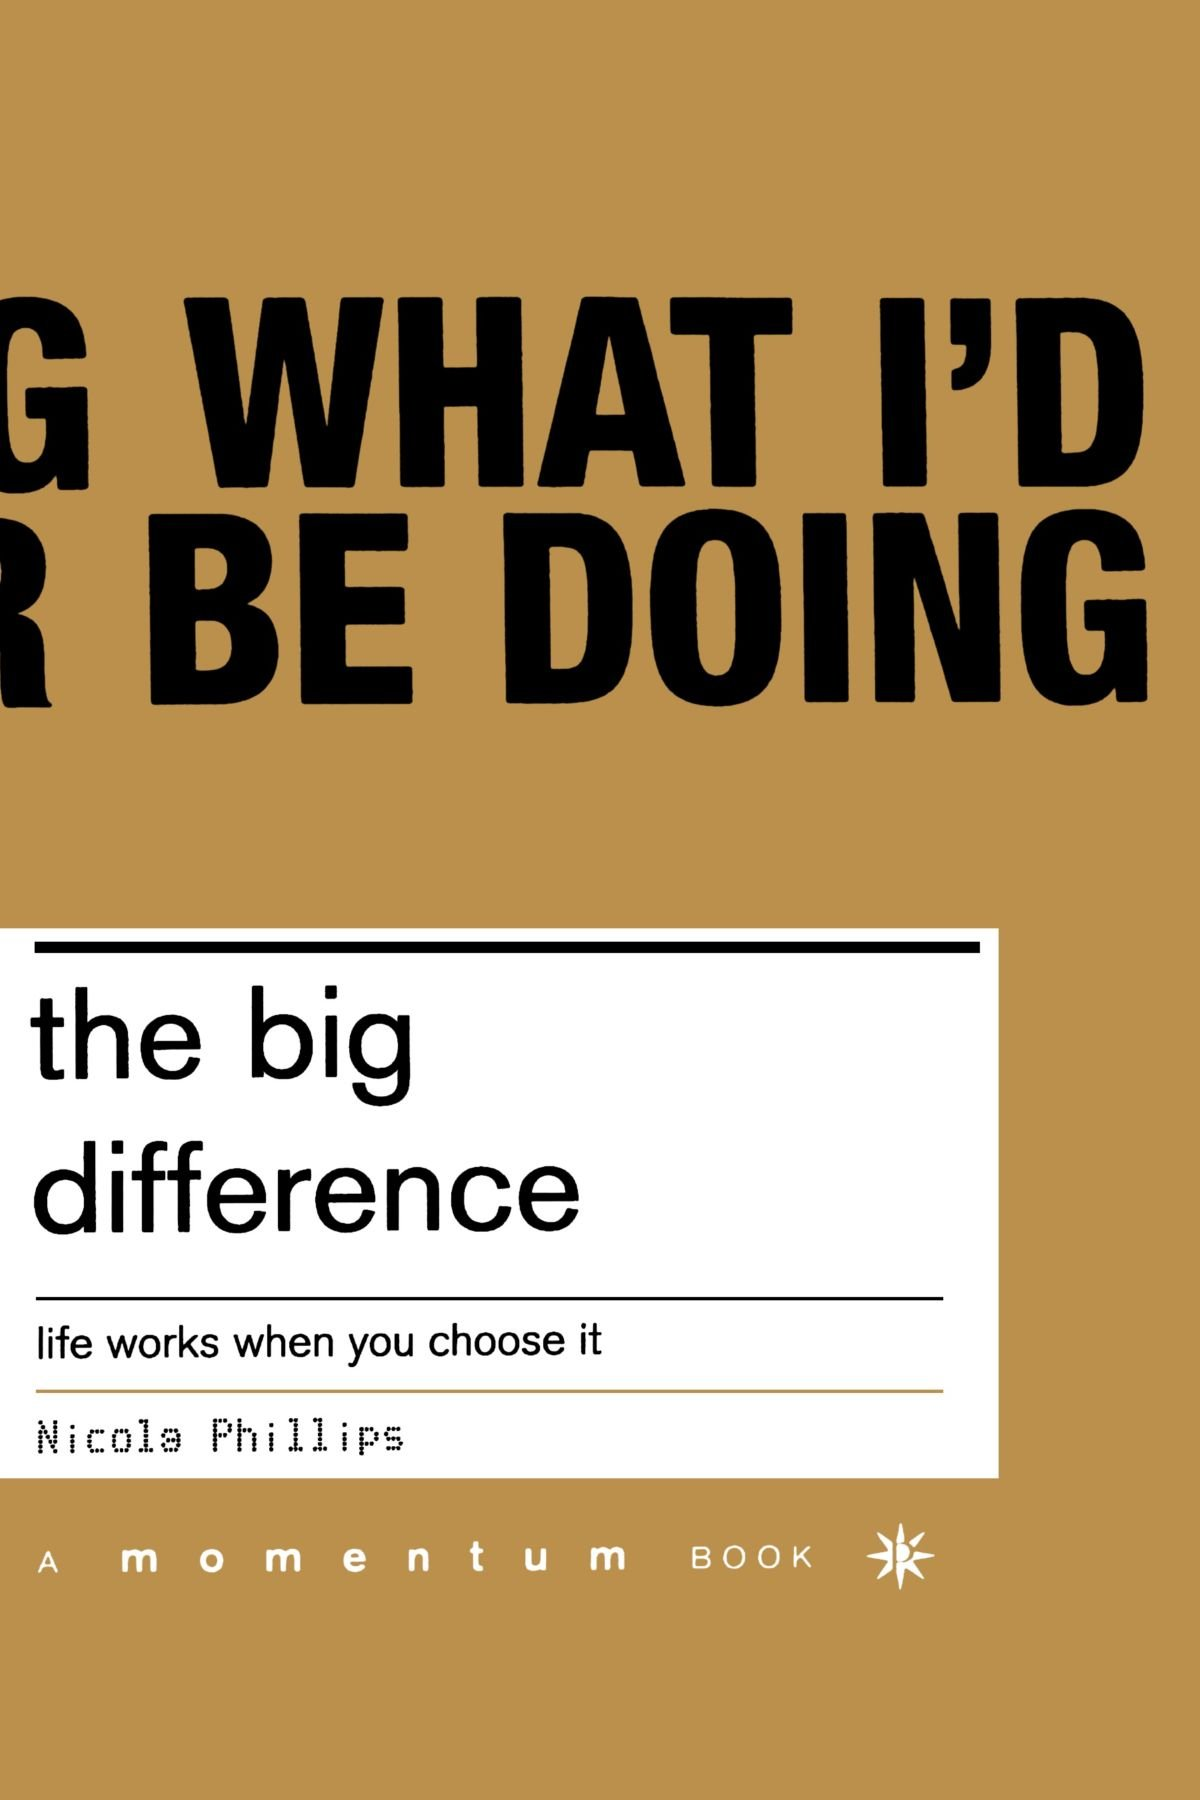 The Big Difference: Life Works When You Choose It